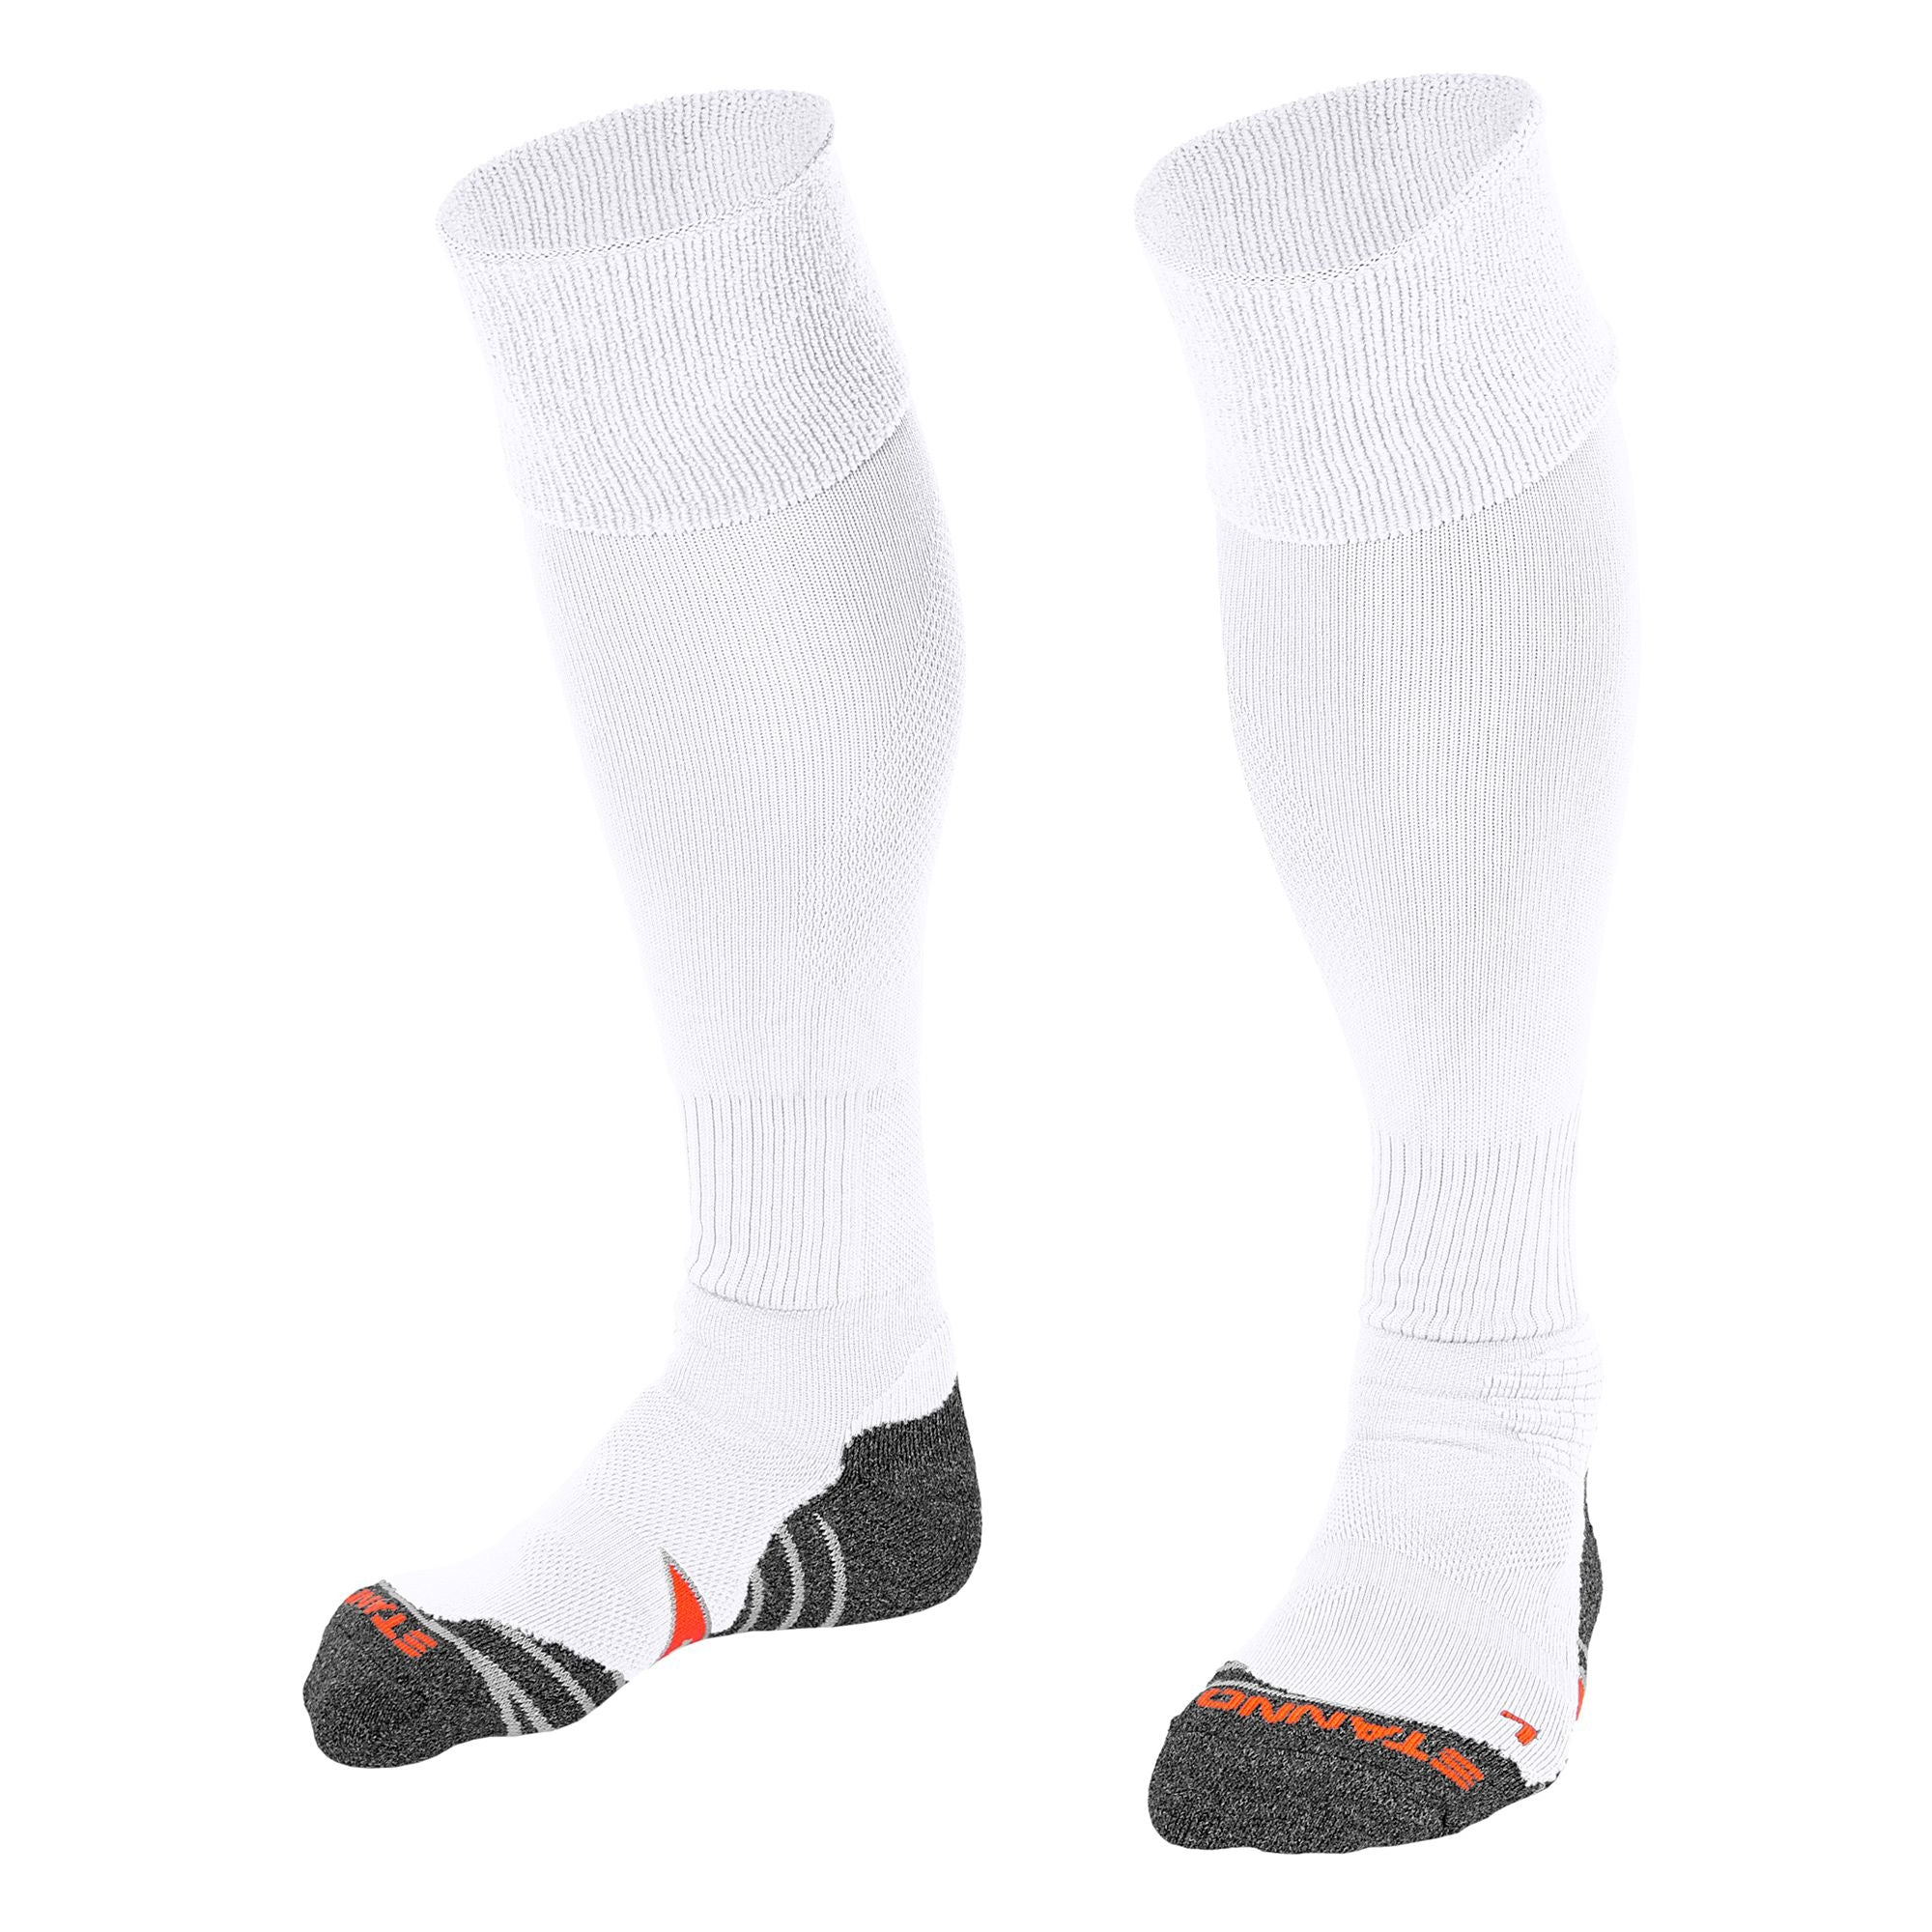 Stanno Uni Sock II football sock in white with grey, white and orange sole